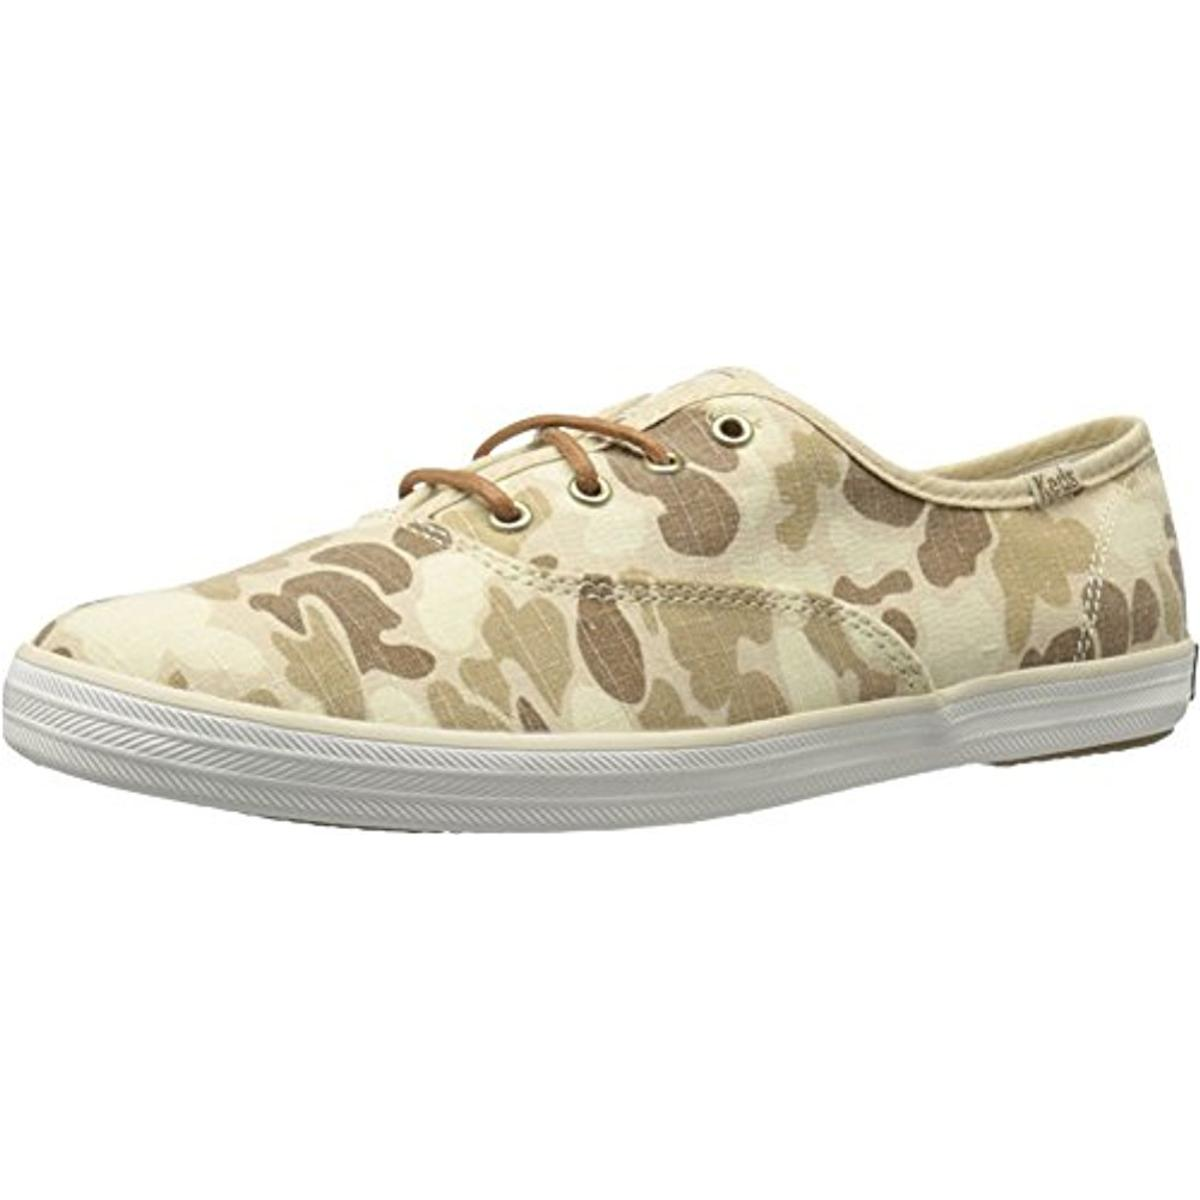 Keds Womens Camouflage Round Toe Fashion Sneakers by Keds